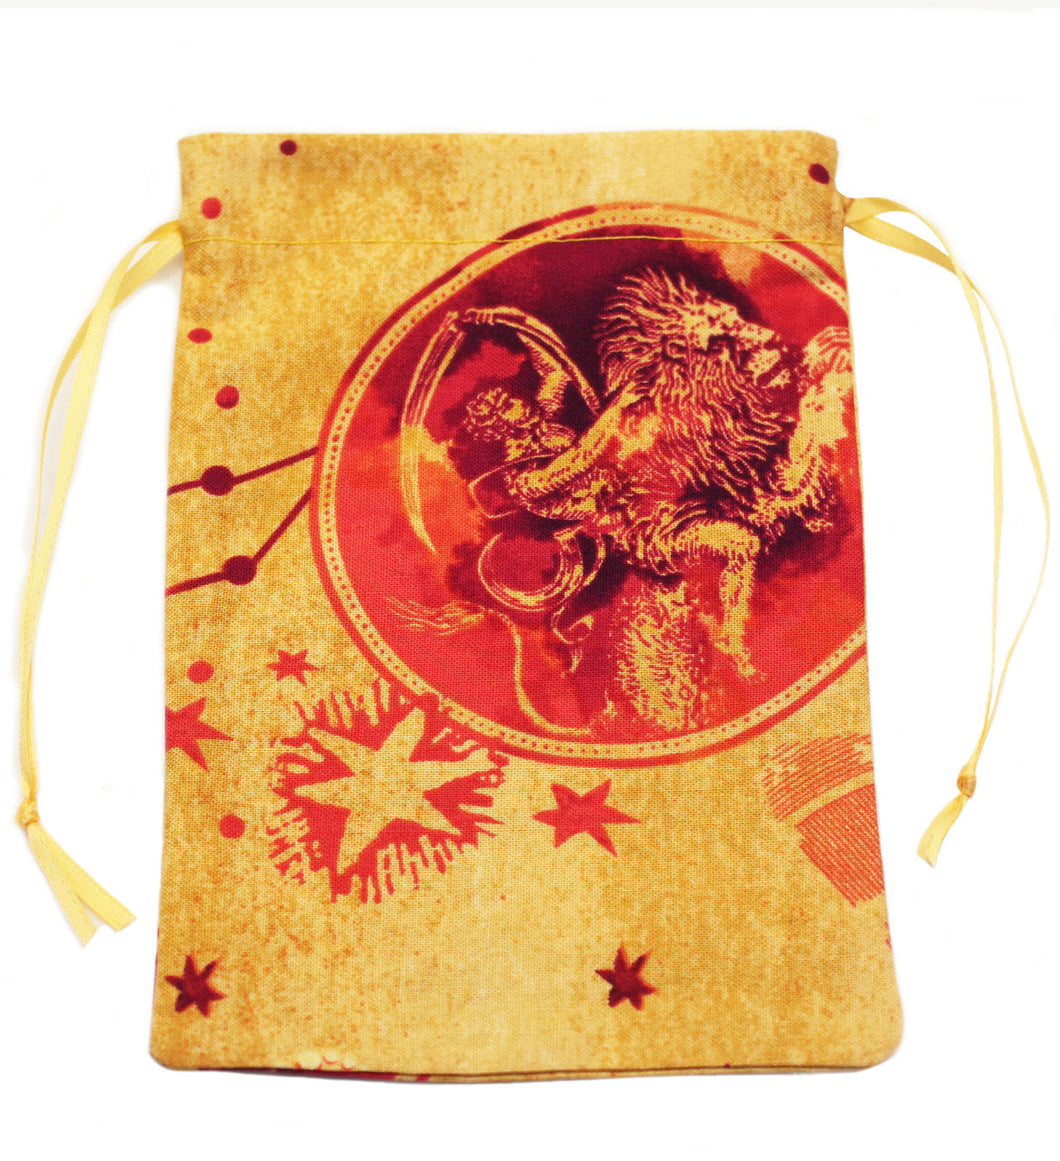 Leo Zodiac Sign Cotton Drawstring Bag for Your Tarot Deck